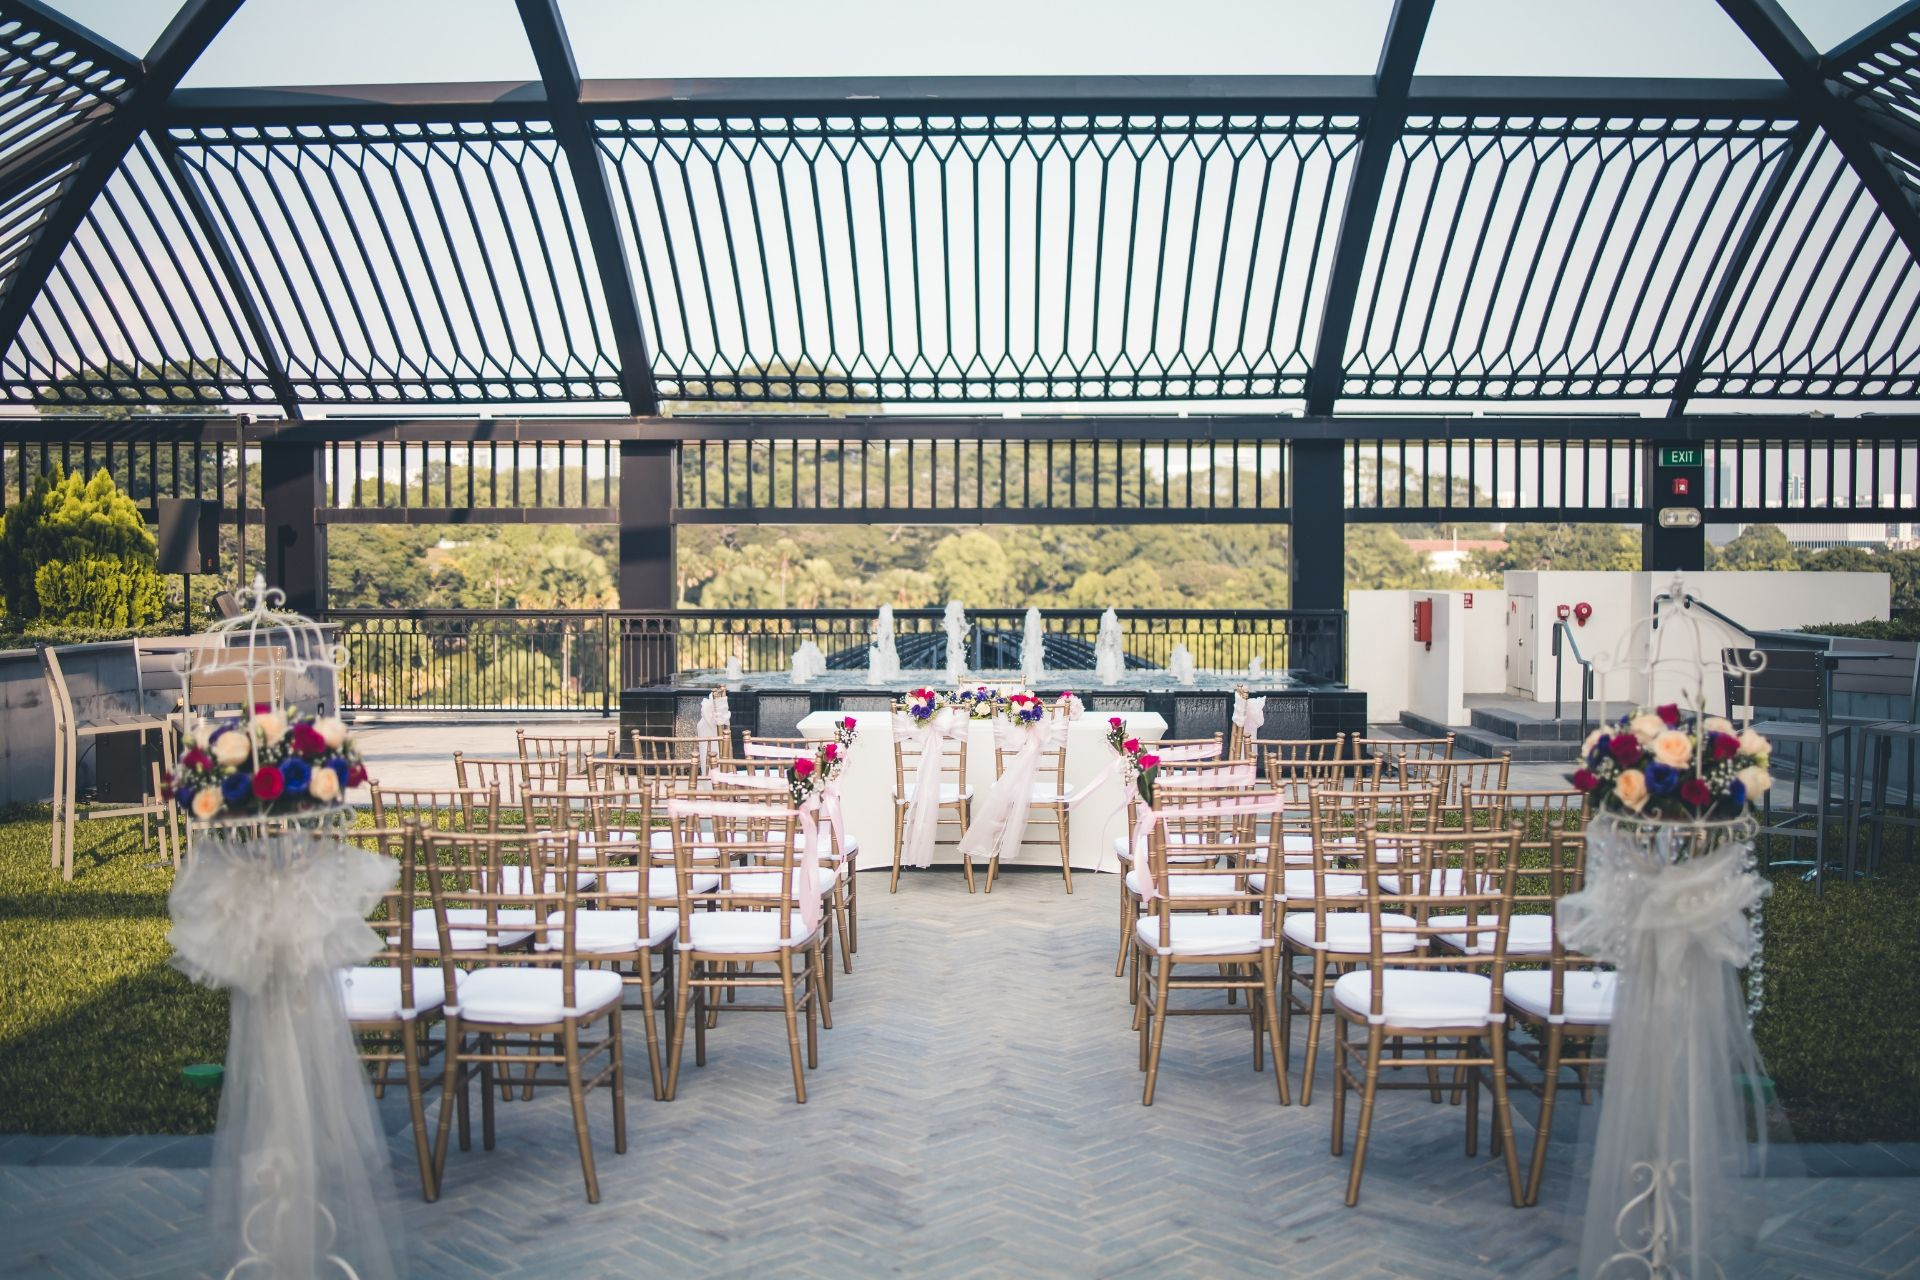 Events at Rooftop Sky Garden - Weddings